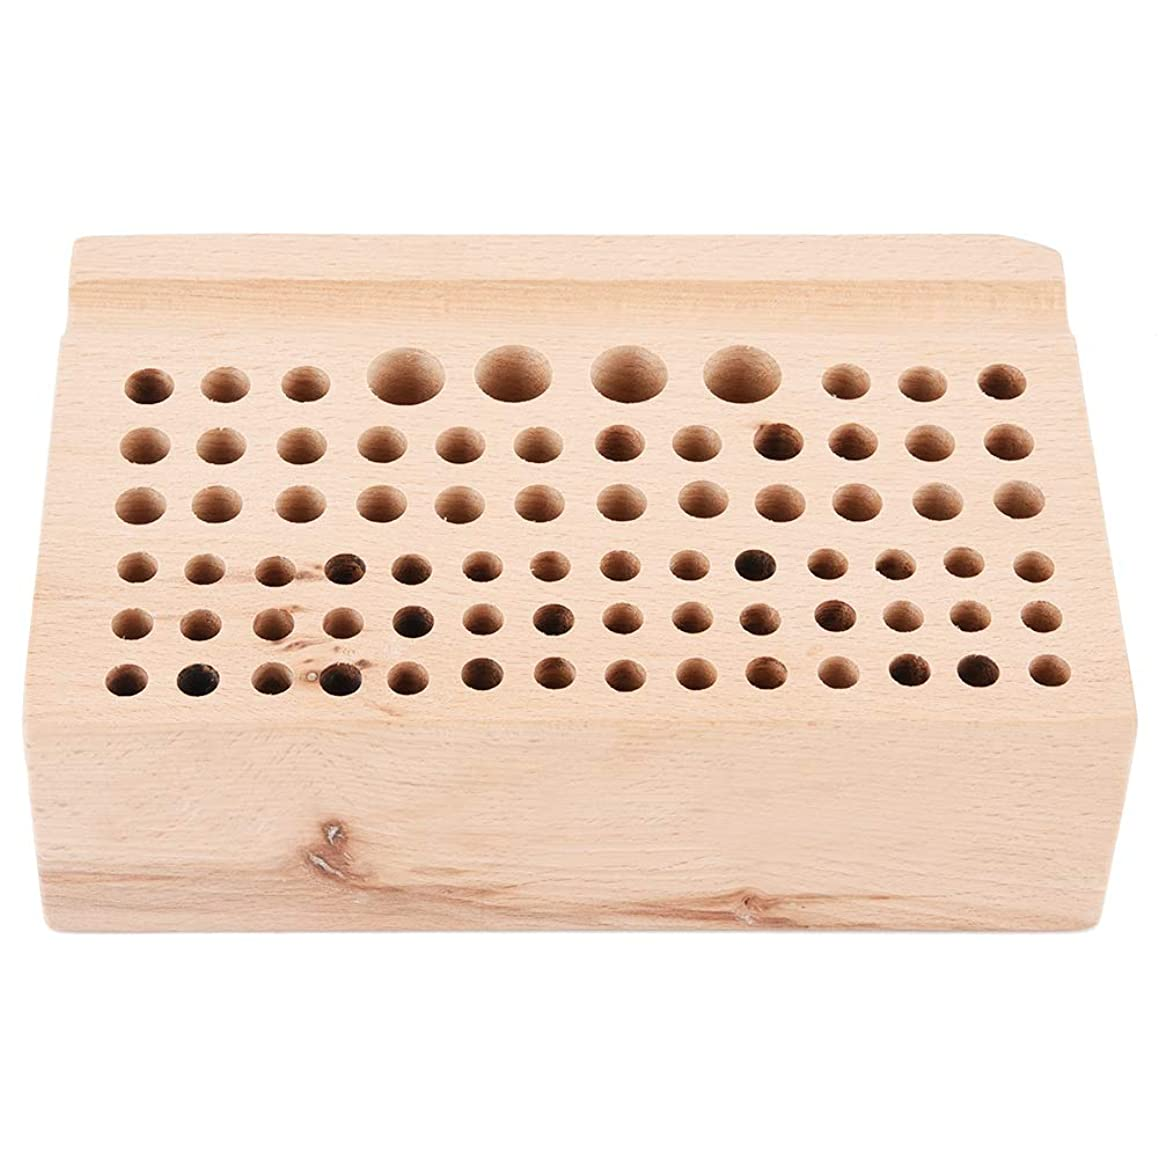 Wood Leather Craft Tools Holder Rack 76 Holes Professional Leather Craft Tool Wood Rack Wooden Punch Tool Stand Holder Organizer